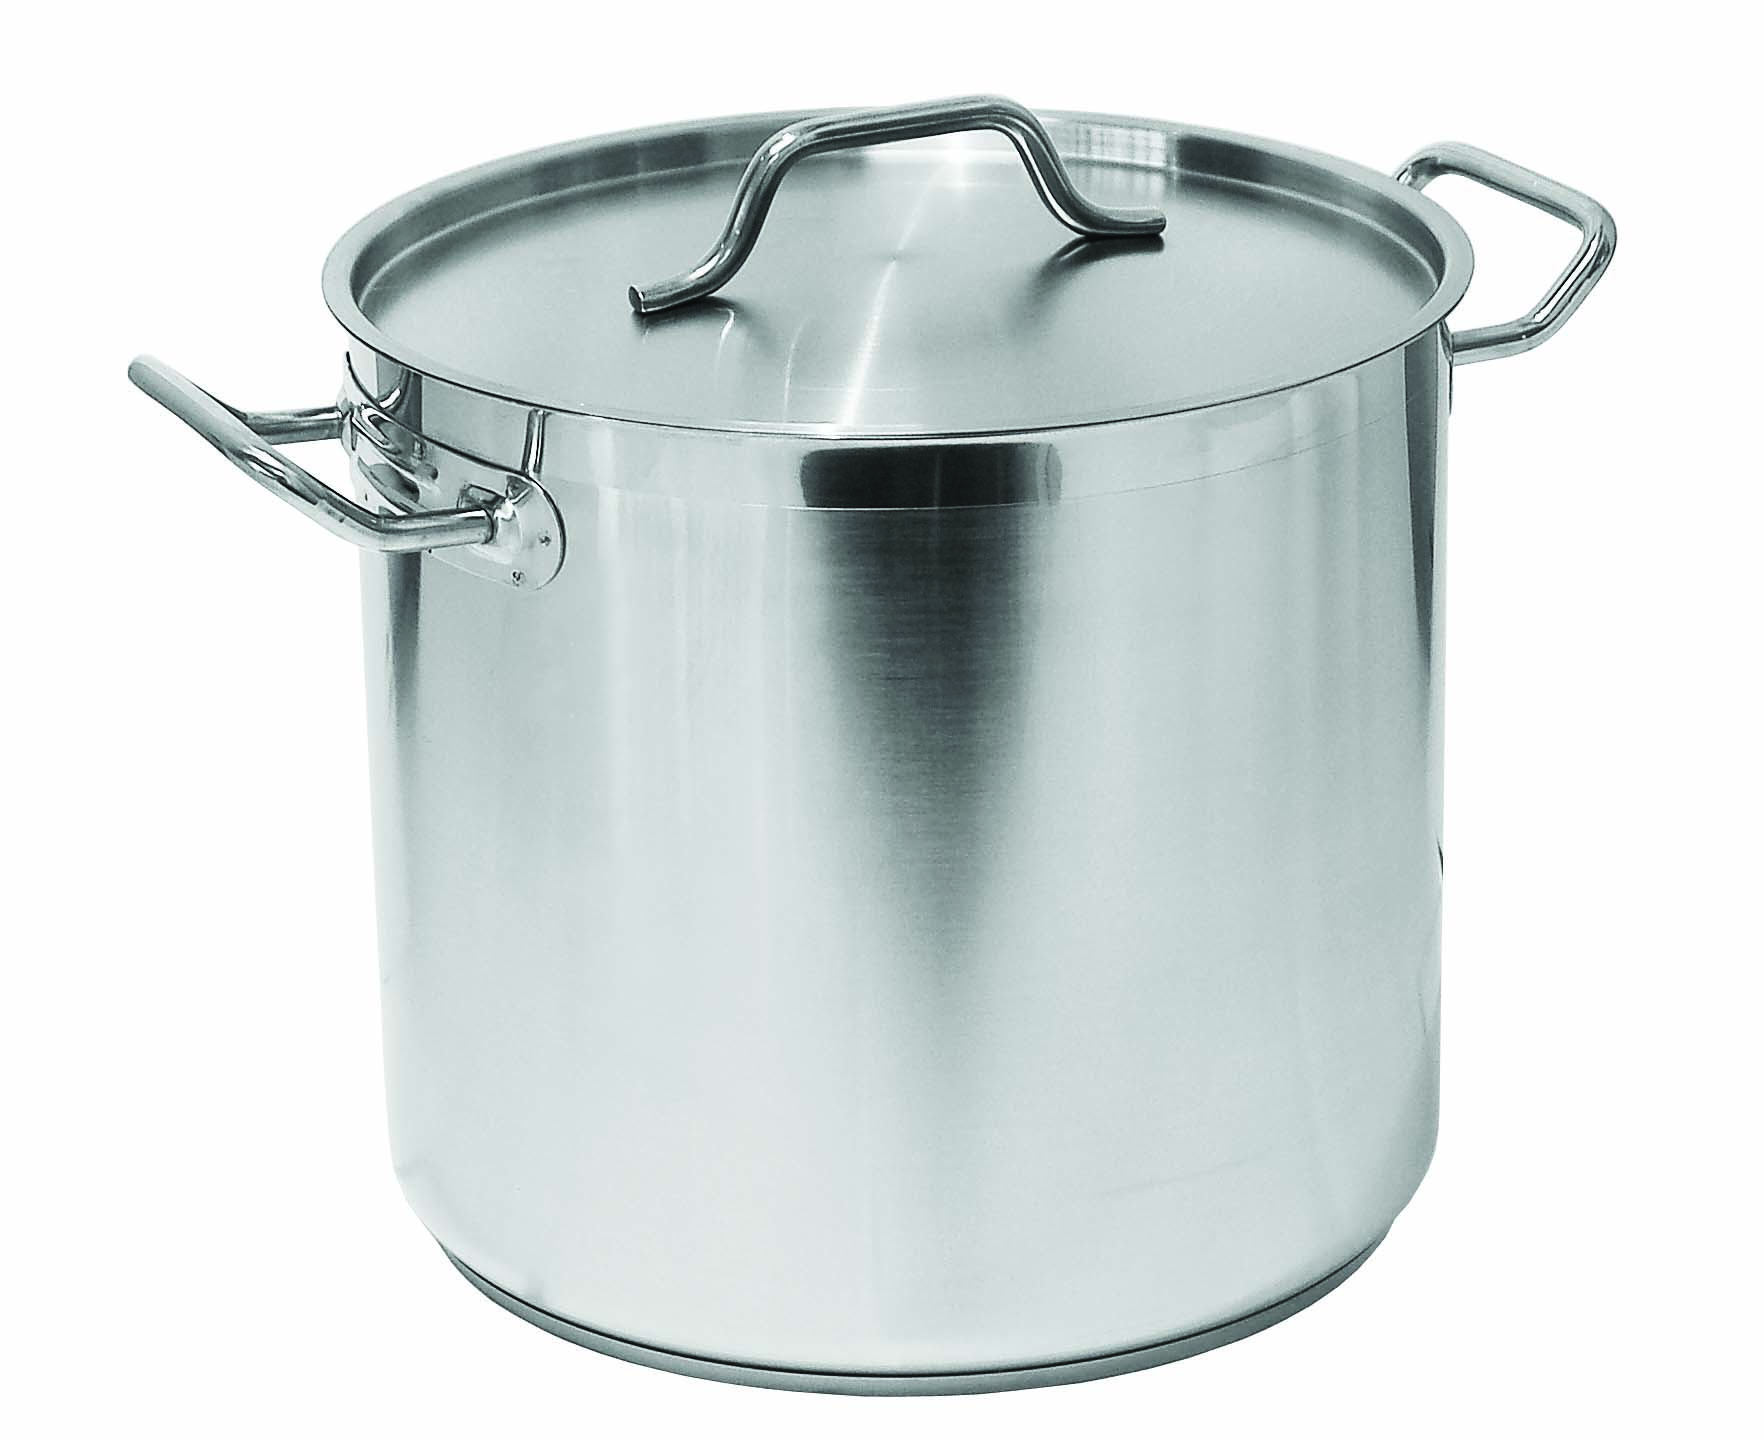 POT S/STEEL CASSEROLE(VALUE) - 30LT